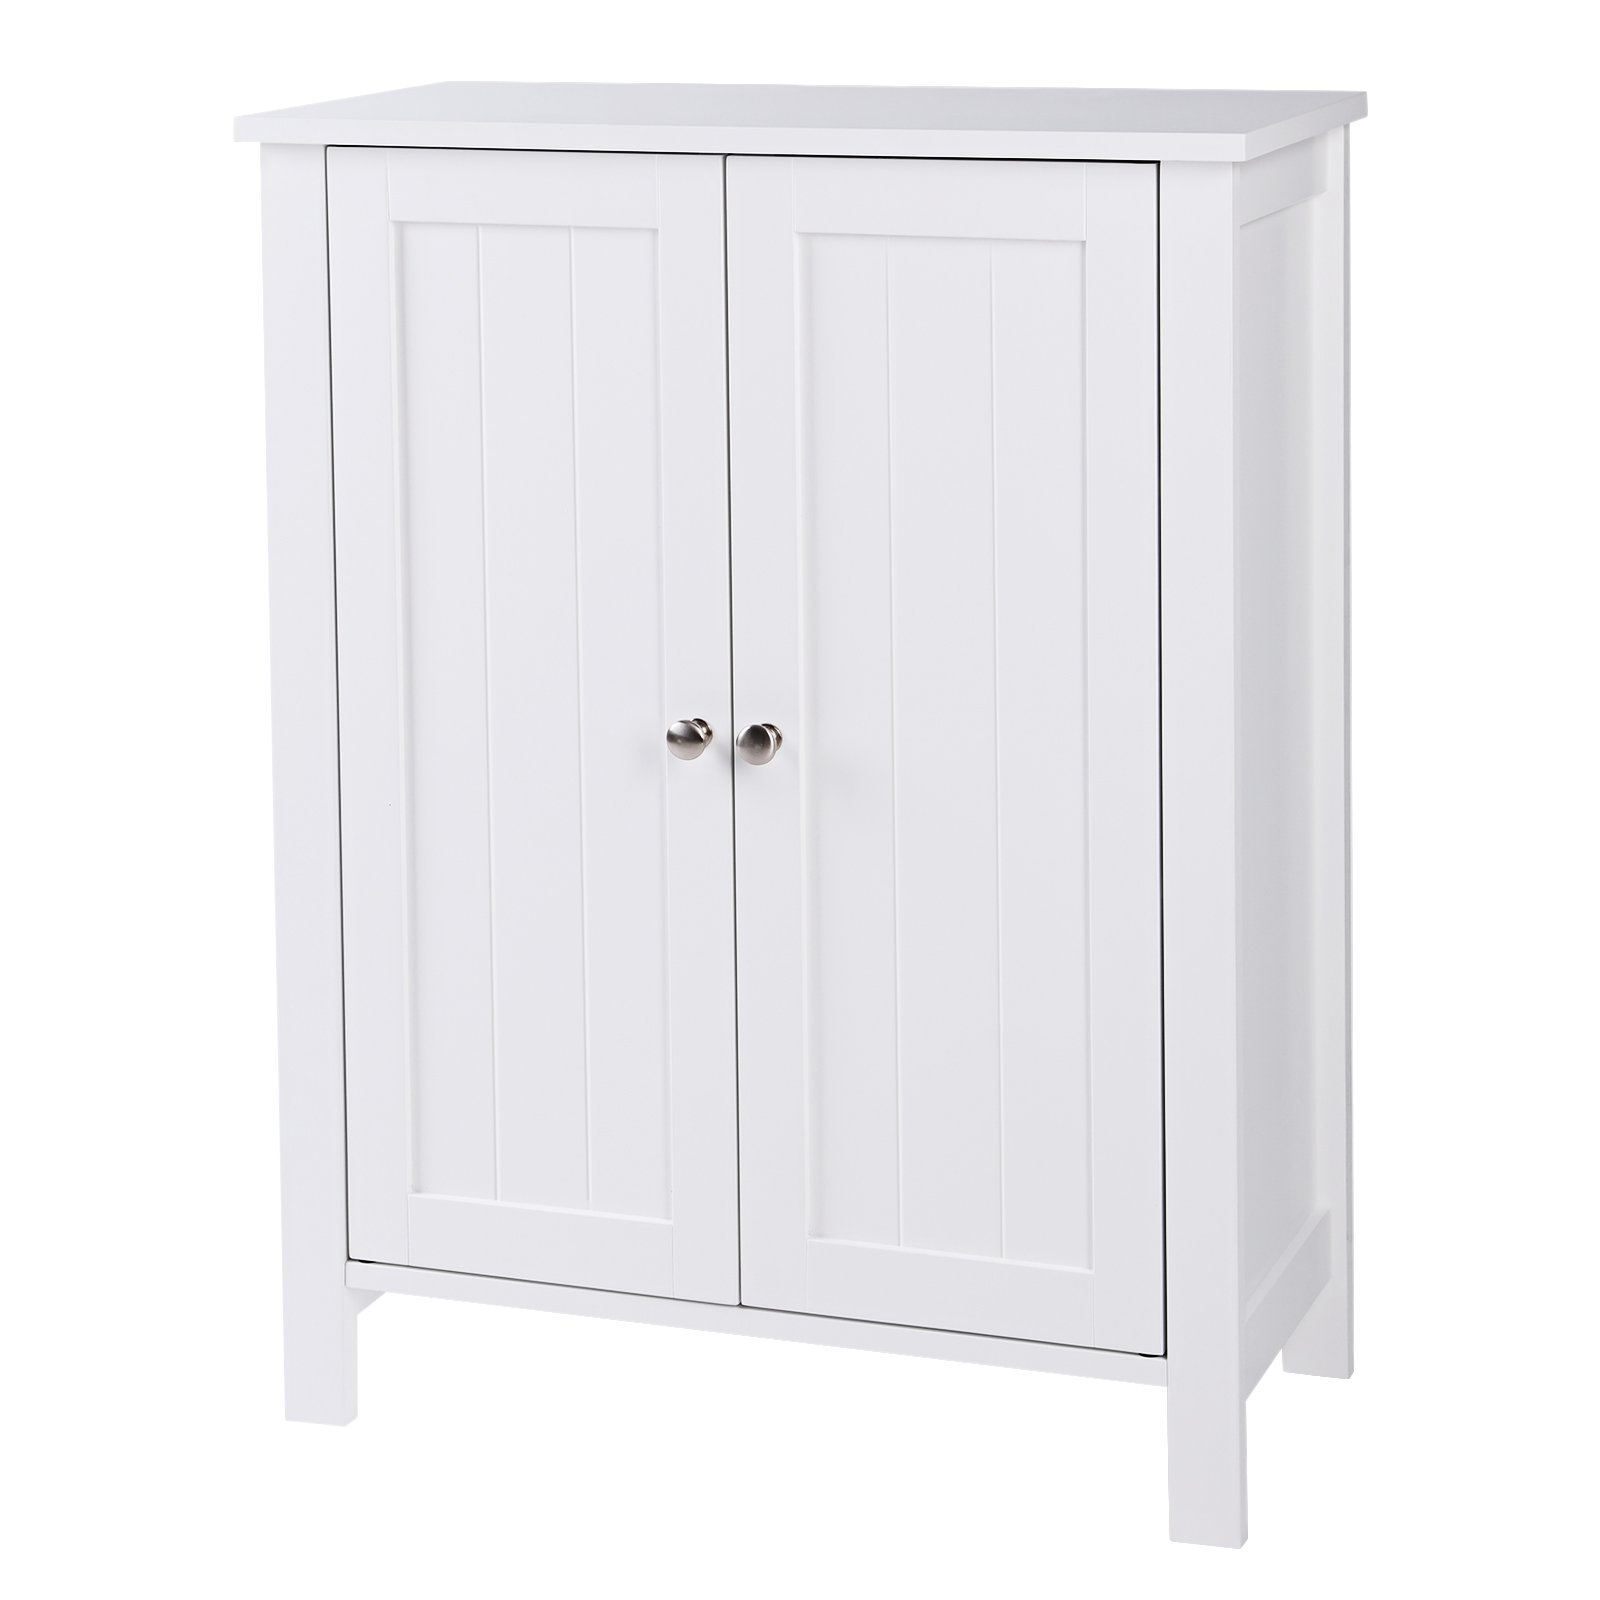 SONGMICS Bathroom Floor Storage Cabinet with Double Door Adjustable Shelf White UBCB60W by SONGMICS